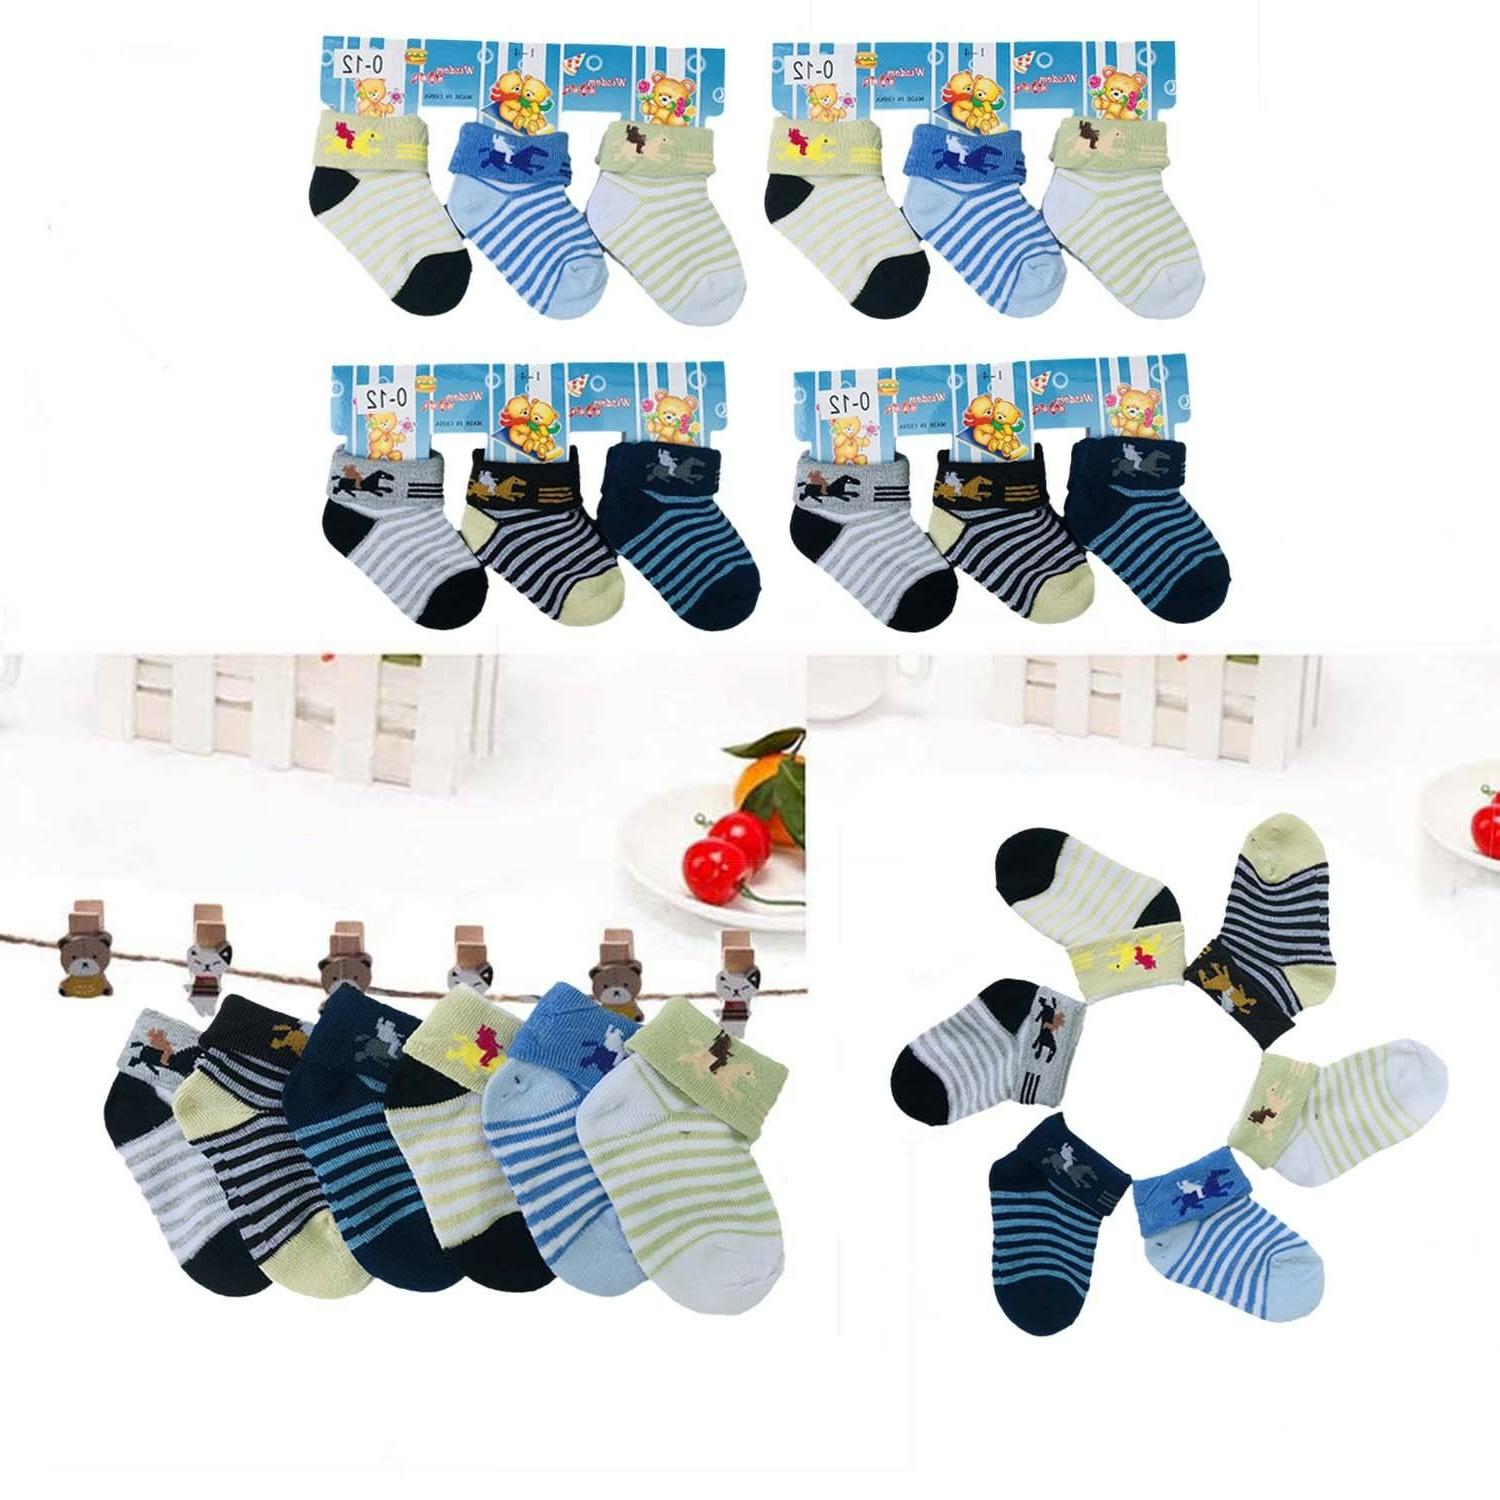 Lot 6 12 Pairs Multi Color Striped Baby Boy NewBorn Baby Sof